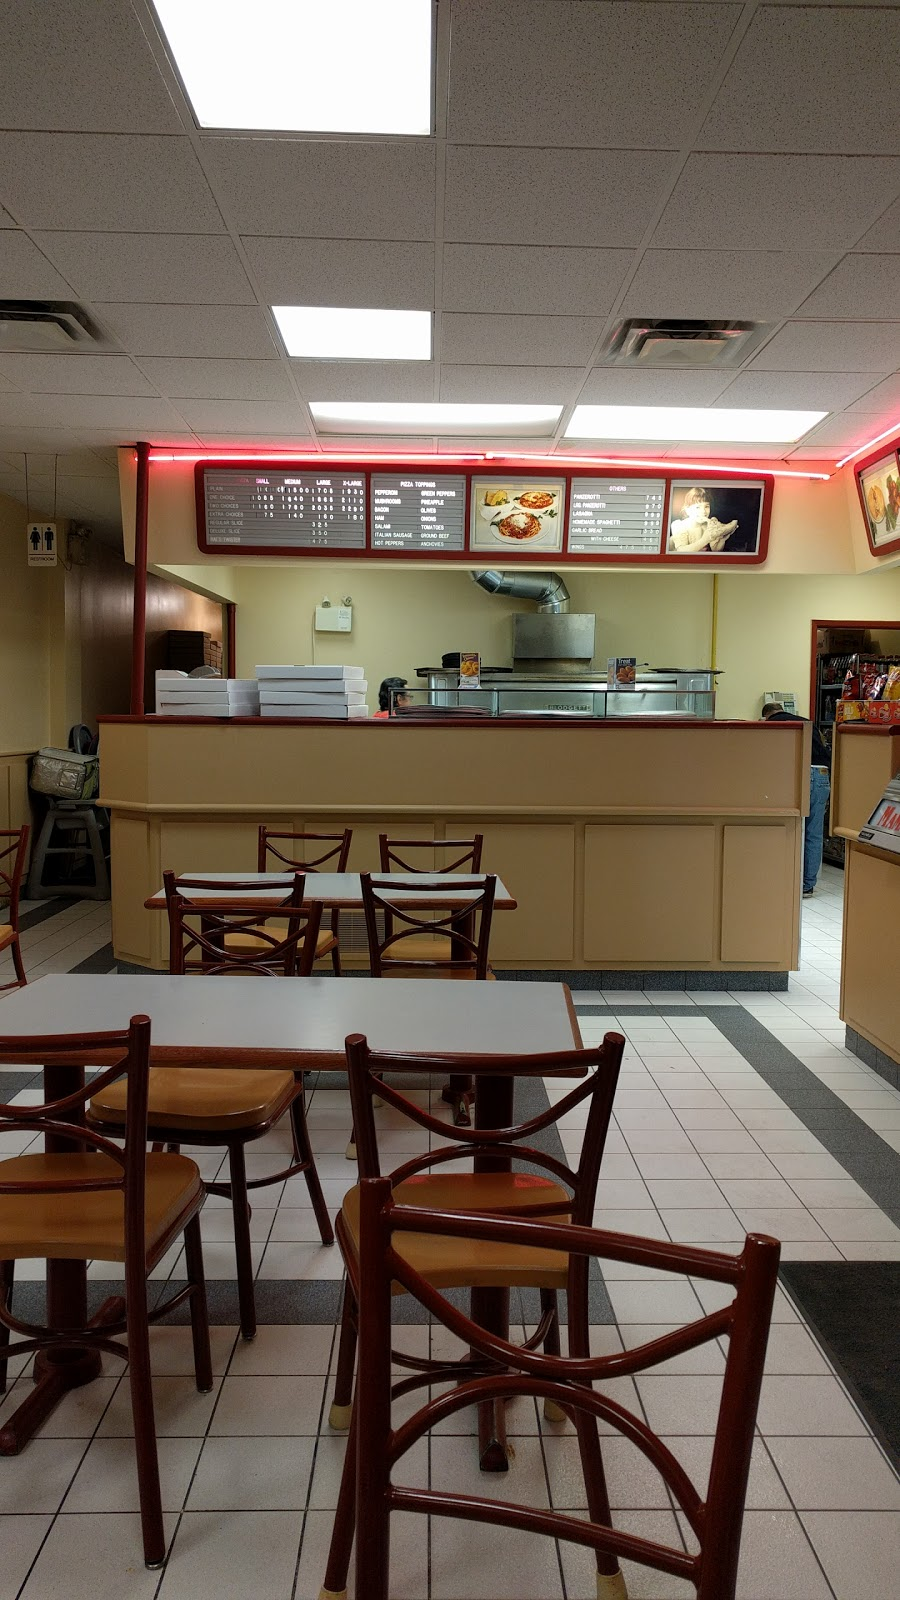 Go-Go Pizza & Subs | restaurant | 355 Bloor St W, Oshawa, ON L1J 5Y5, Canada | 9057233333 OR +1 905-723-3333